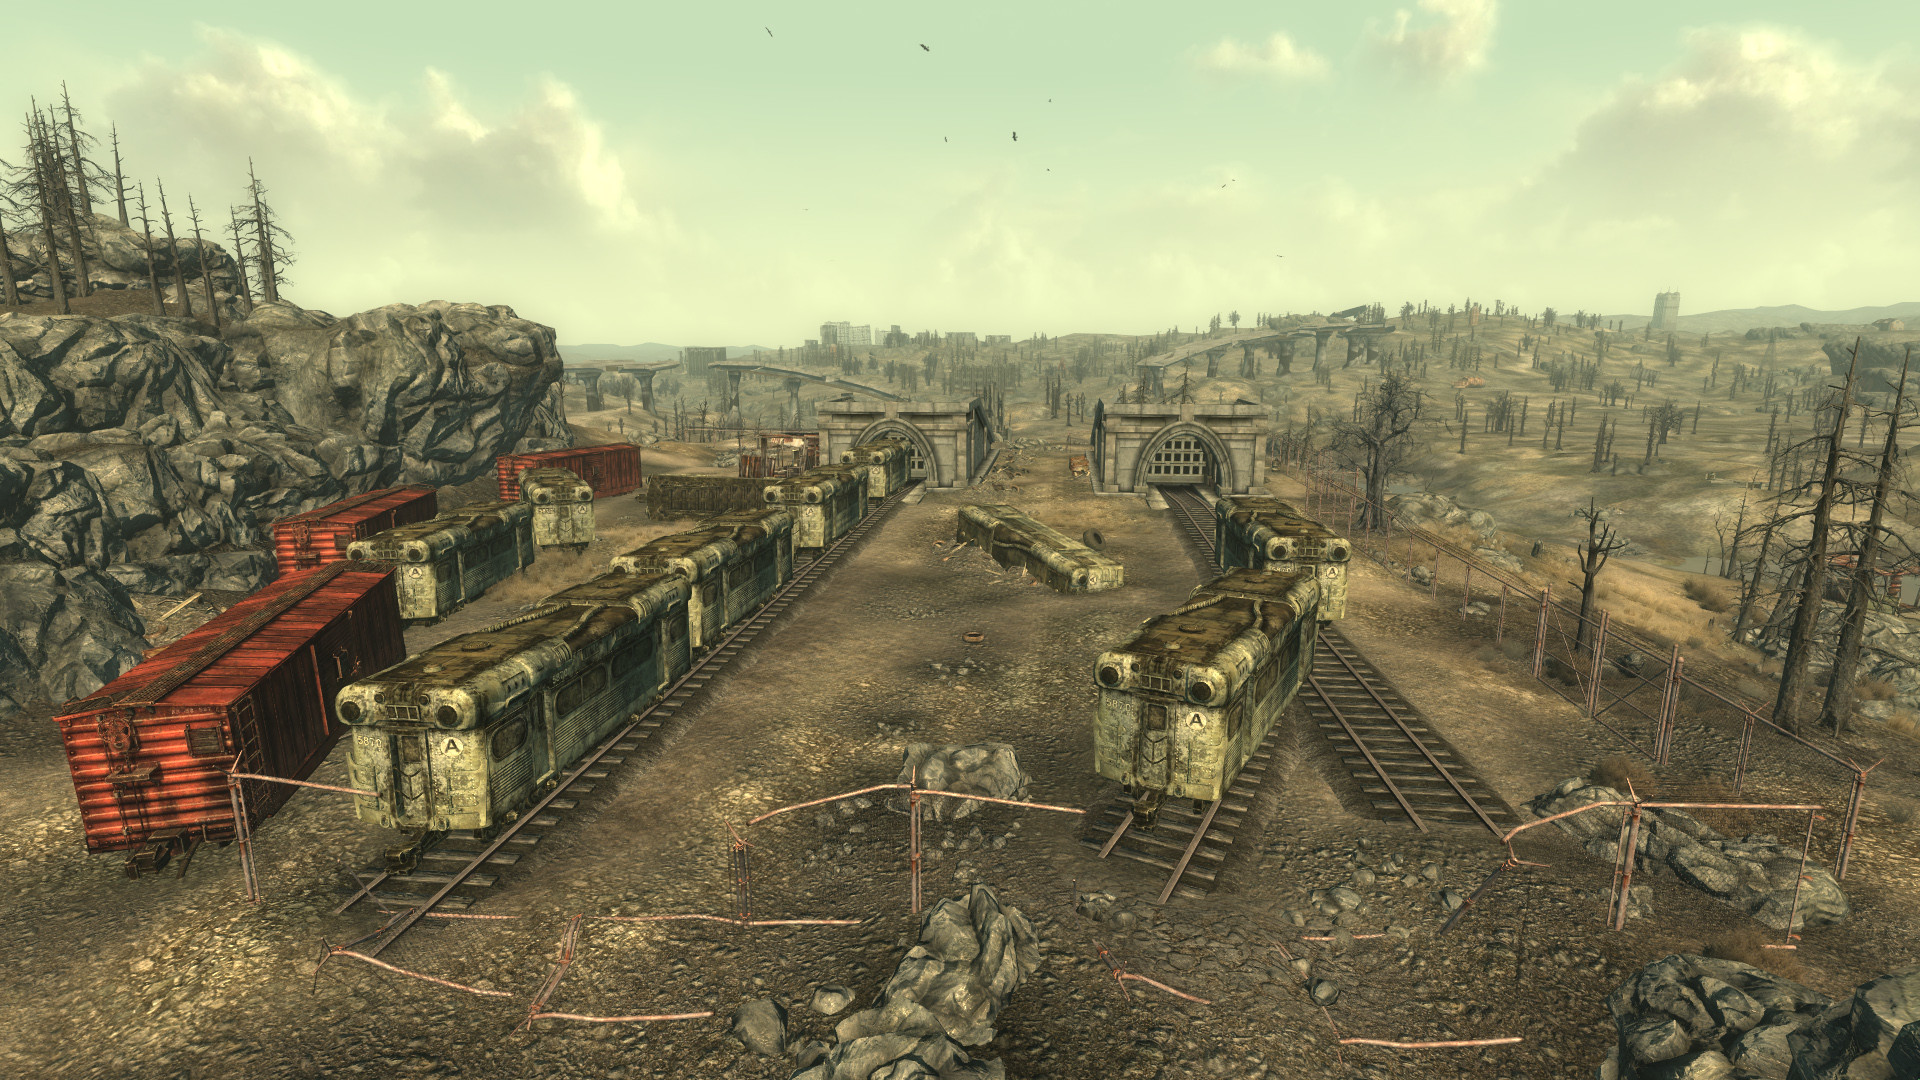 abandoned train yards hd wallpaper for your desktop background or .